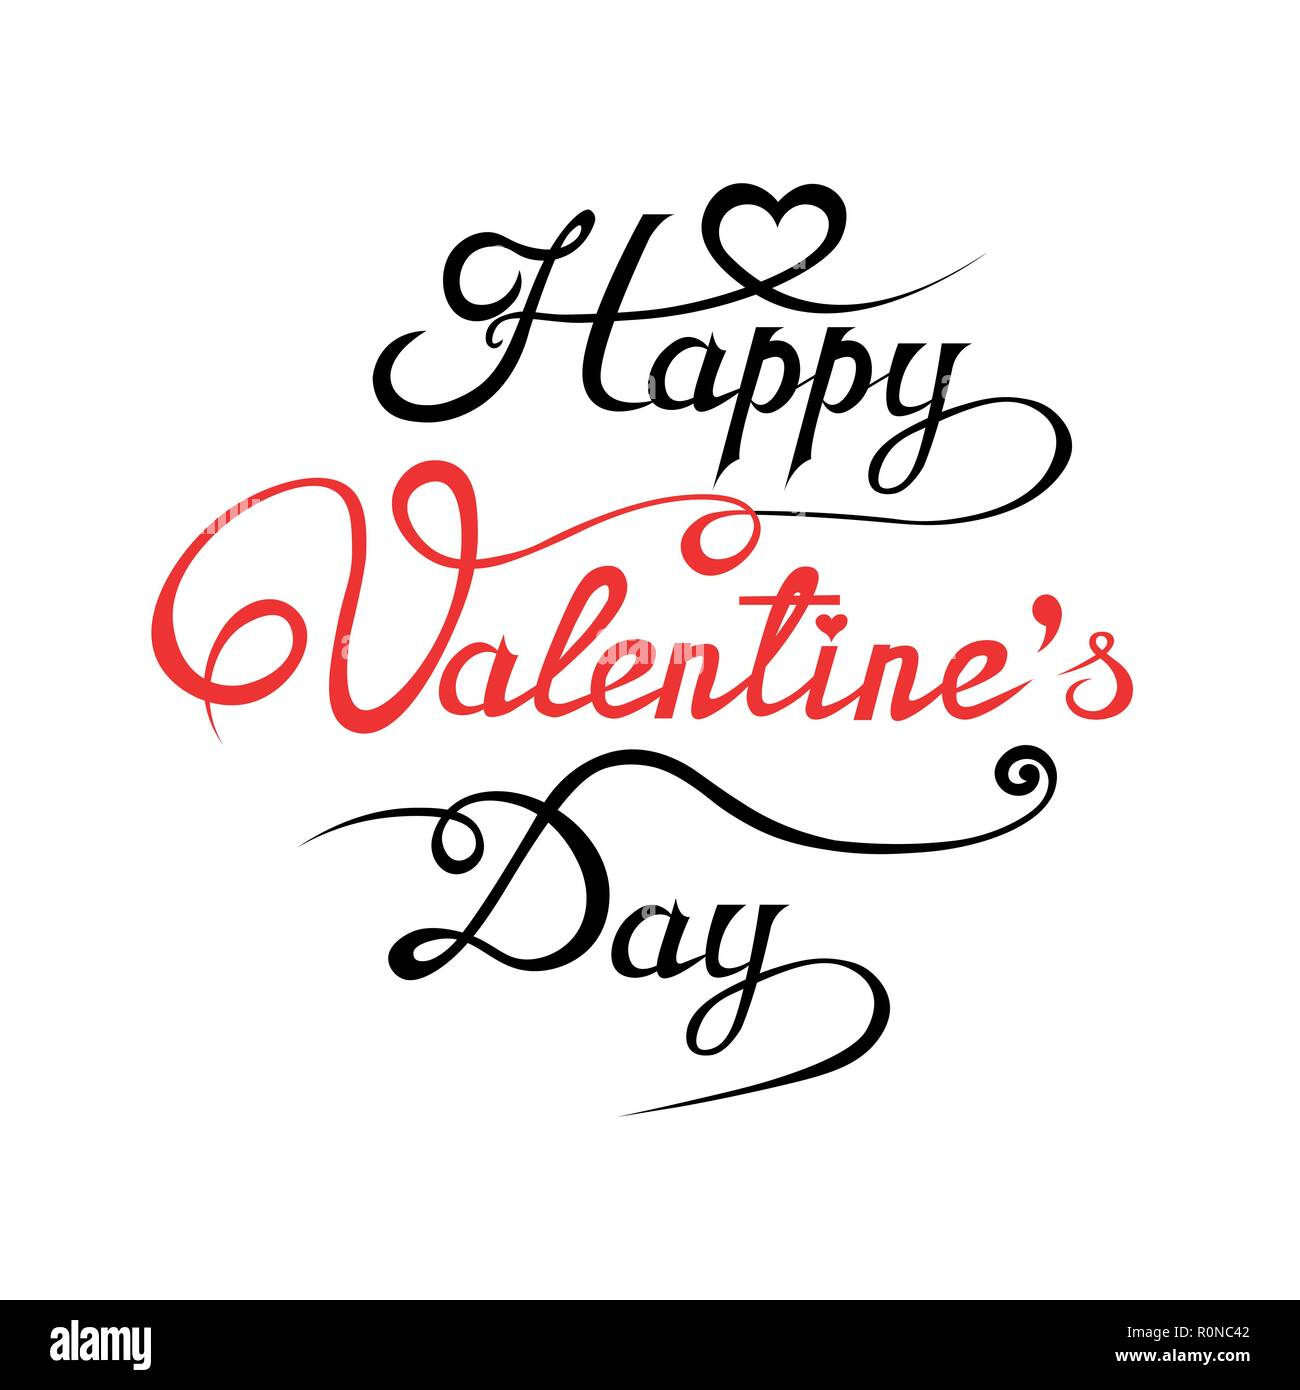 Happy Valentine S Day Hand Drawing Background With Hearts Stock Vector Image Art Alamy